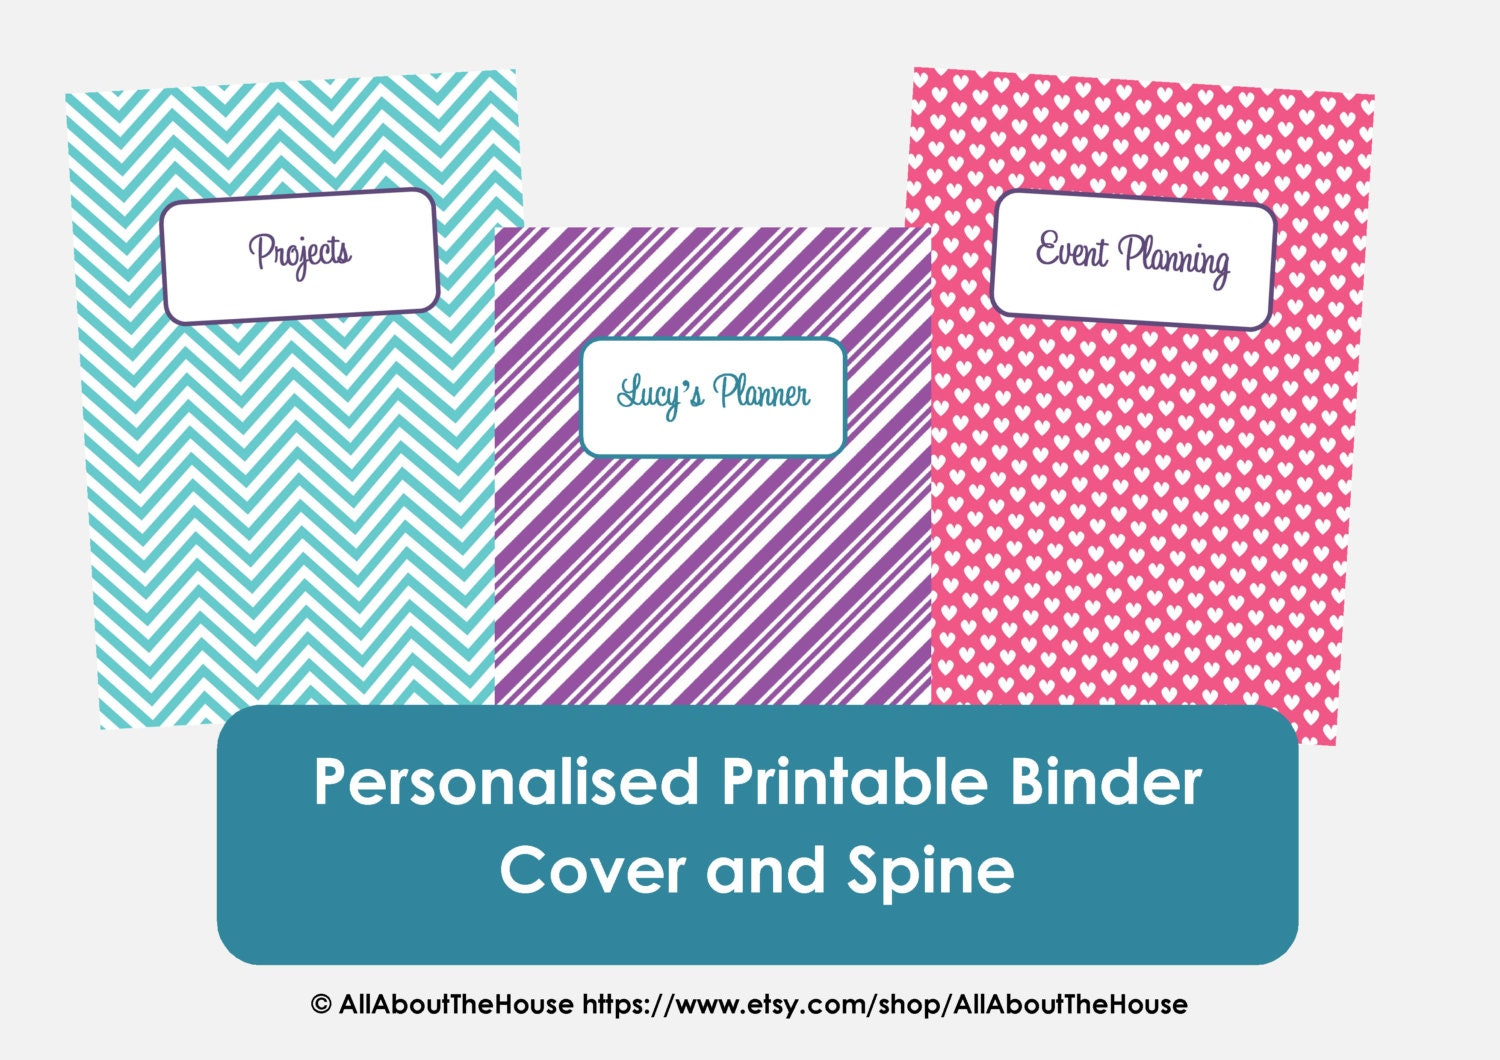 binder spine template free - Boat.jeremyeaton.co